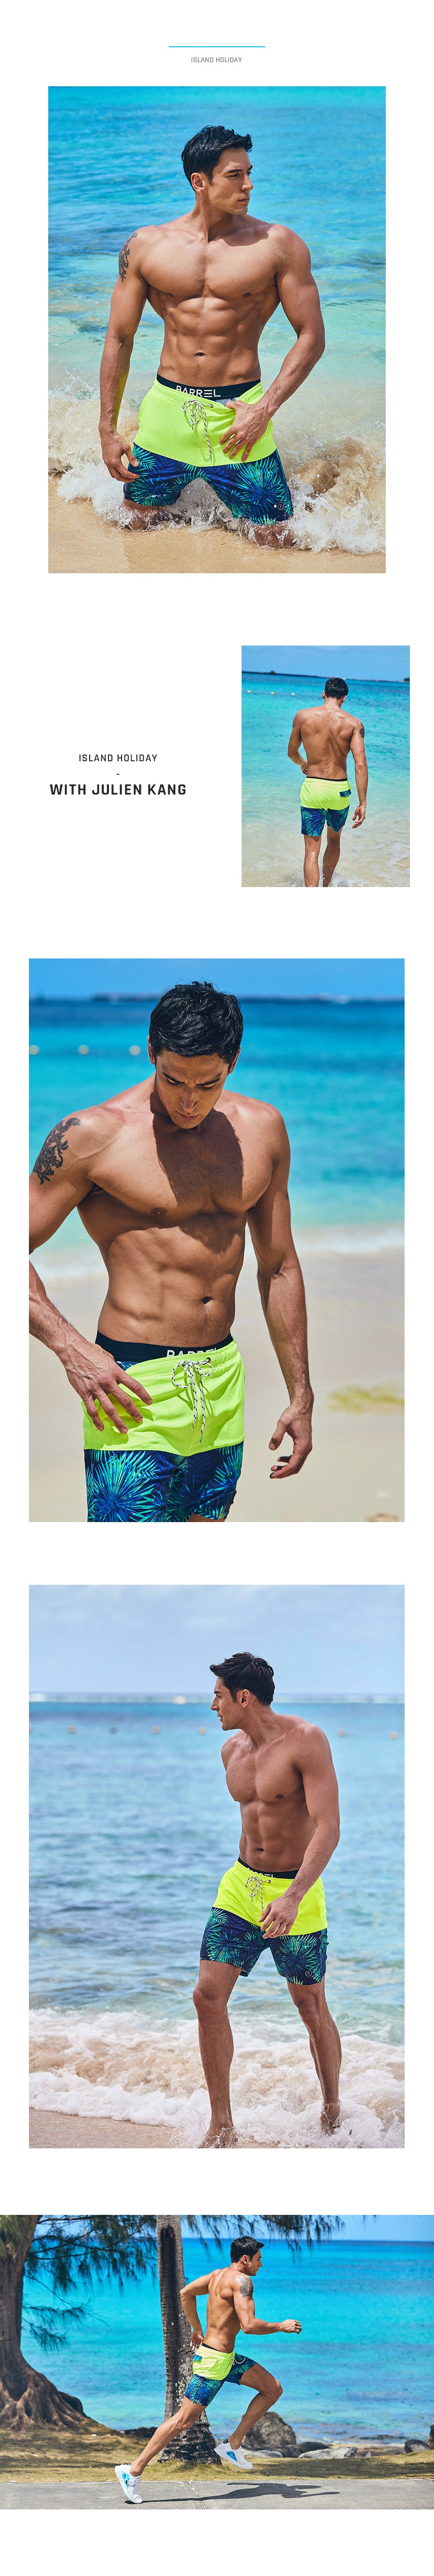 Barrel Mens Beach Pattern Boardshorts-NEON YELLOW/GREEN SPARKLE_image